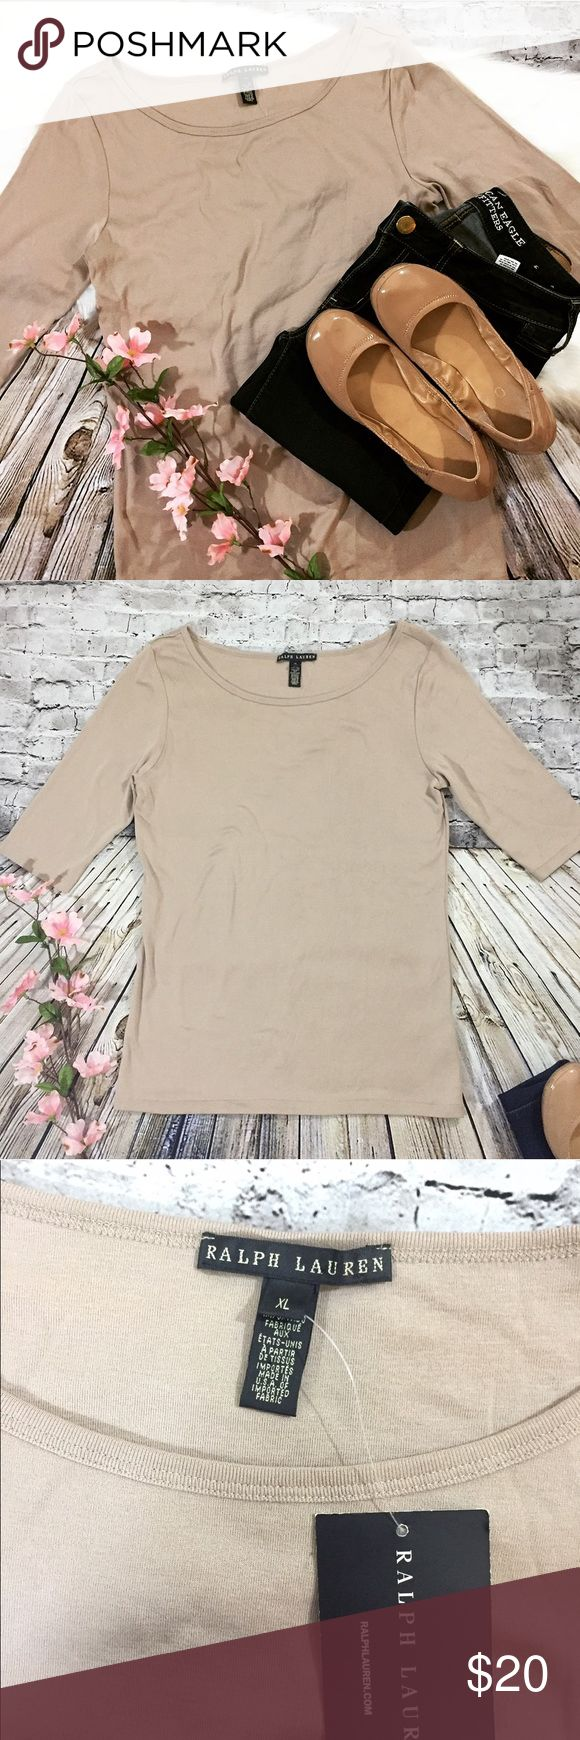 Ralph Lauren Top Light Brown Women's top. Brand new with tags. No stains or rips. Ralph Lauren Black Label Tops